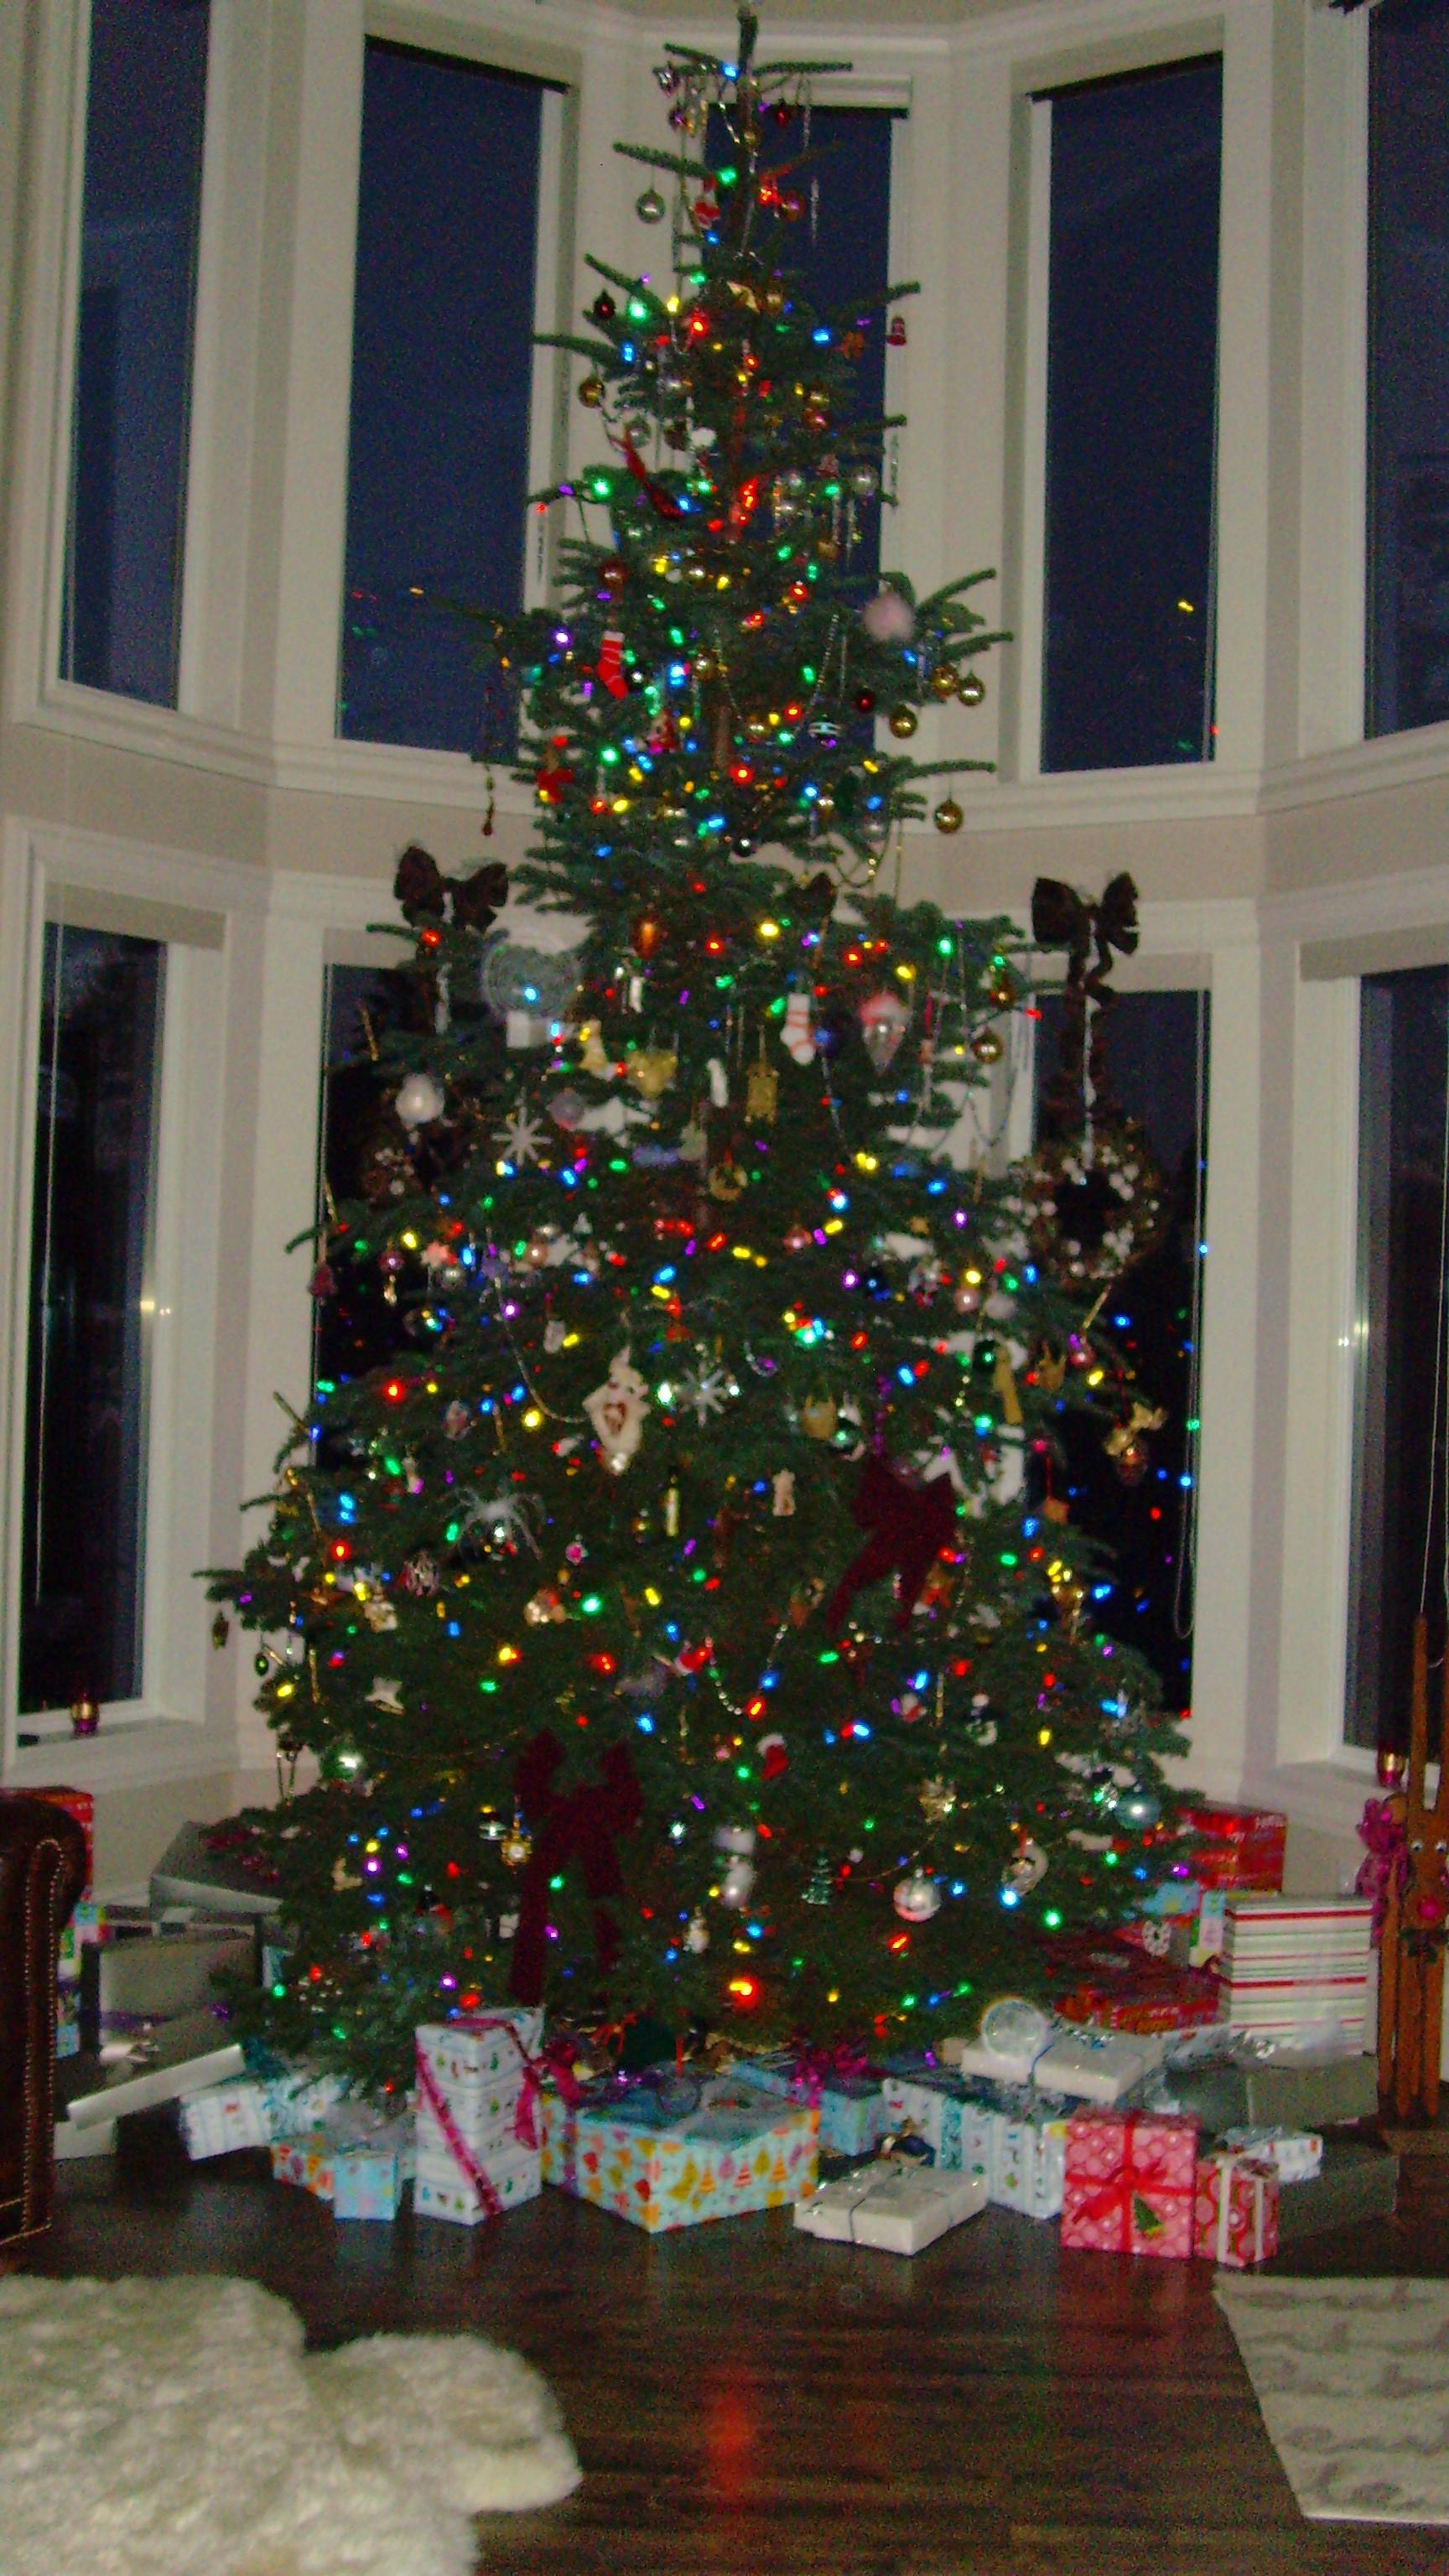 Old Fashioned Christmas Tree Fresh Old Fashioned Christmas Trees Pinterest Ideas Of Amazing 43 Photos Old Fashioned Christmas Tree